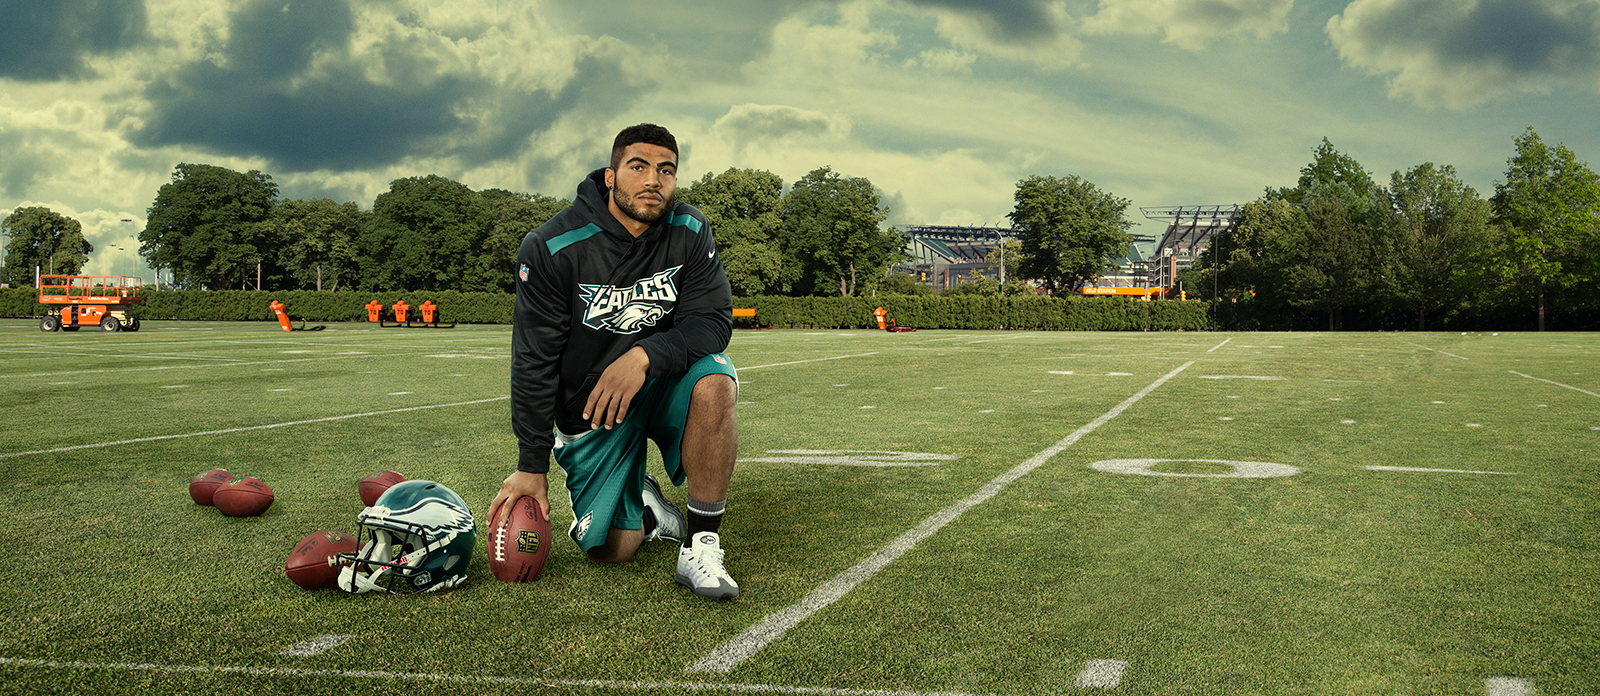 EAGLES_KENDRICKS_COMP_PANO.jpg